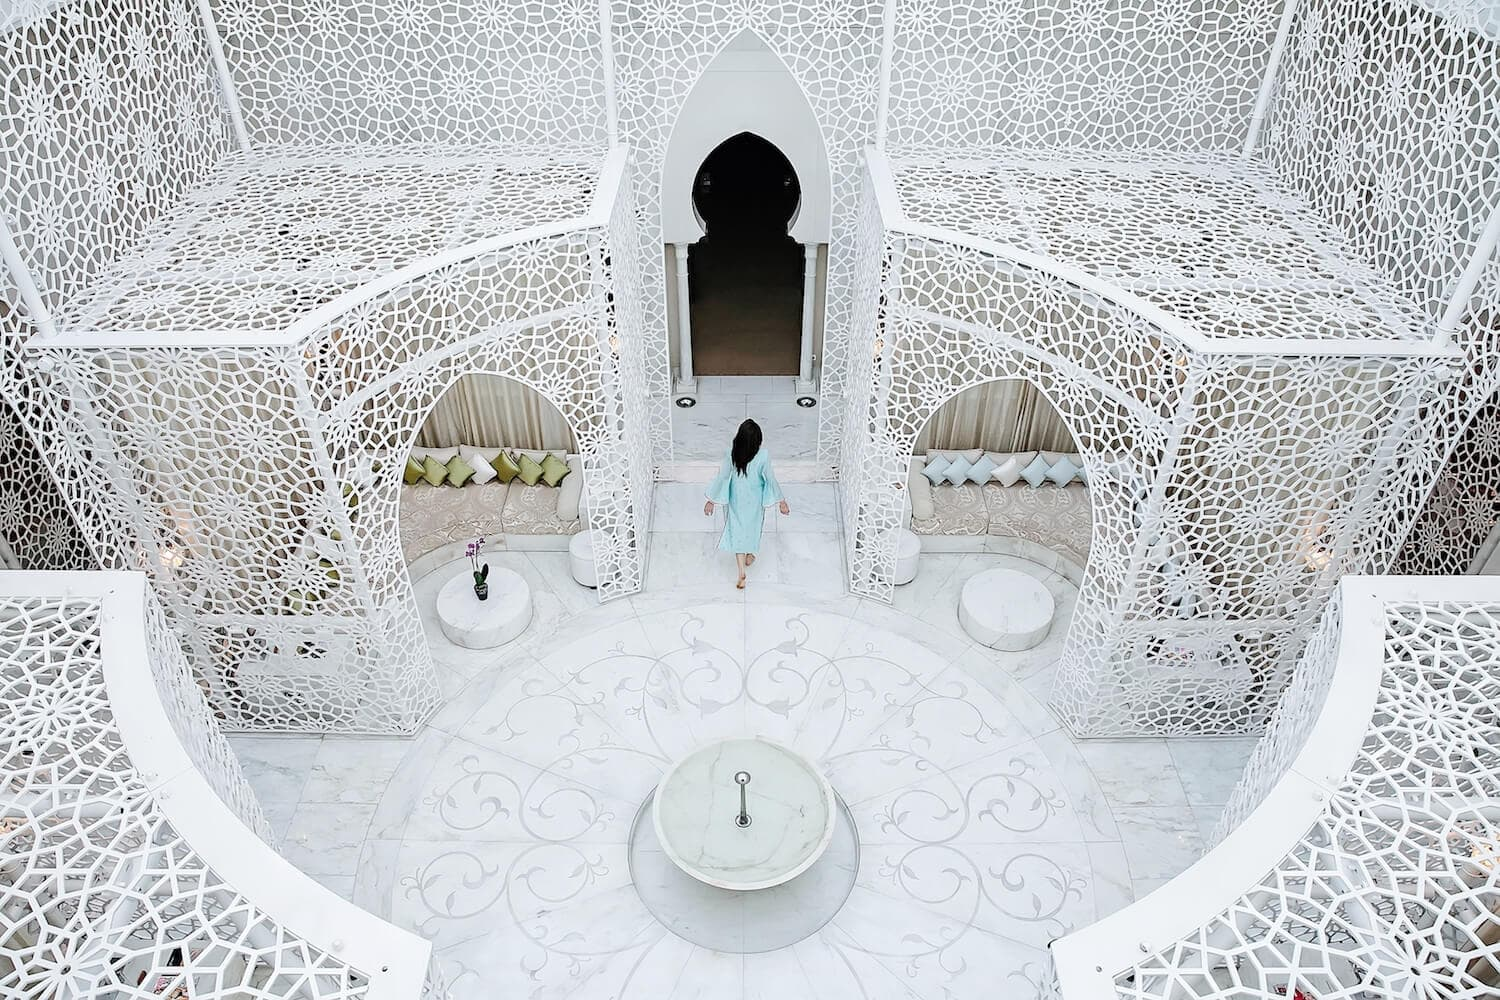 marrakech wellness guide, royal mansour wellness spa marrakech africa